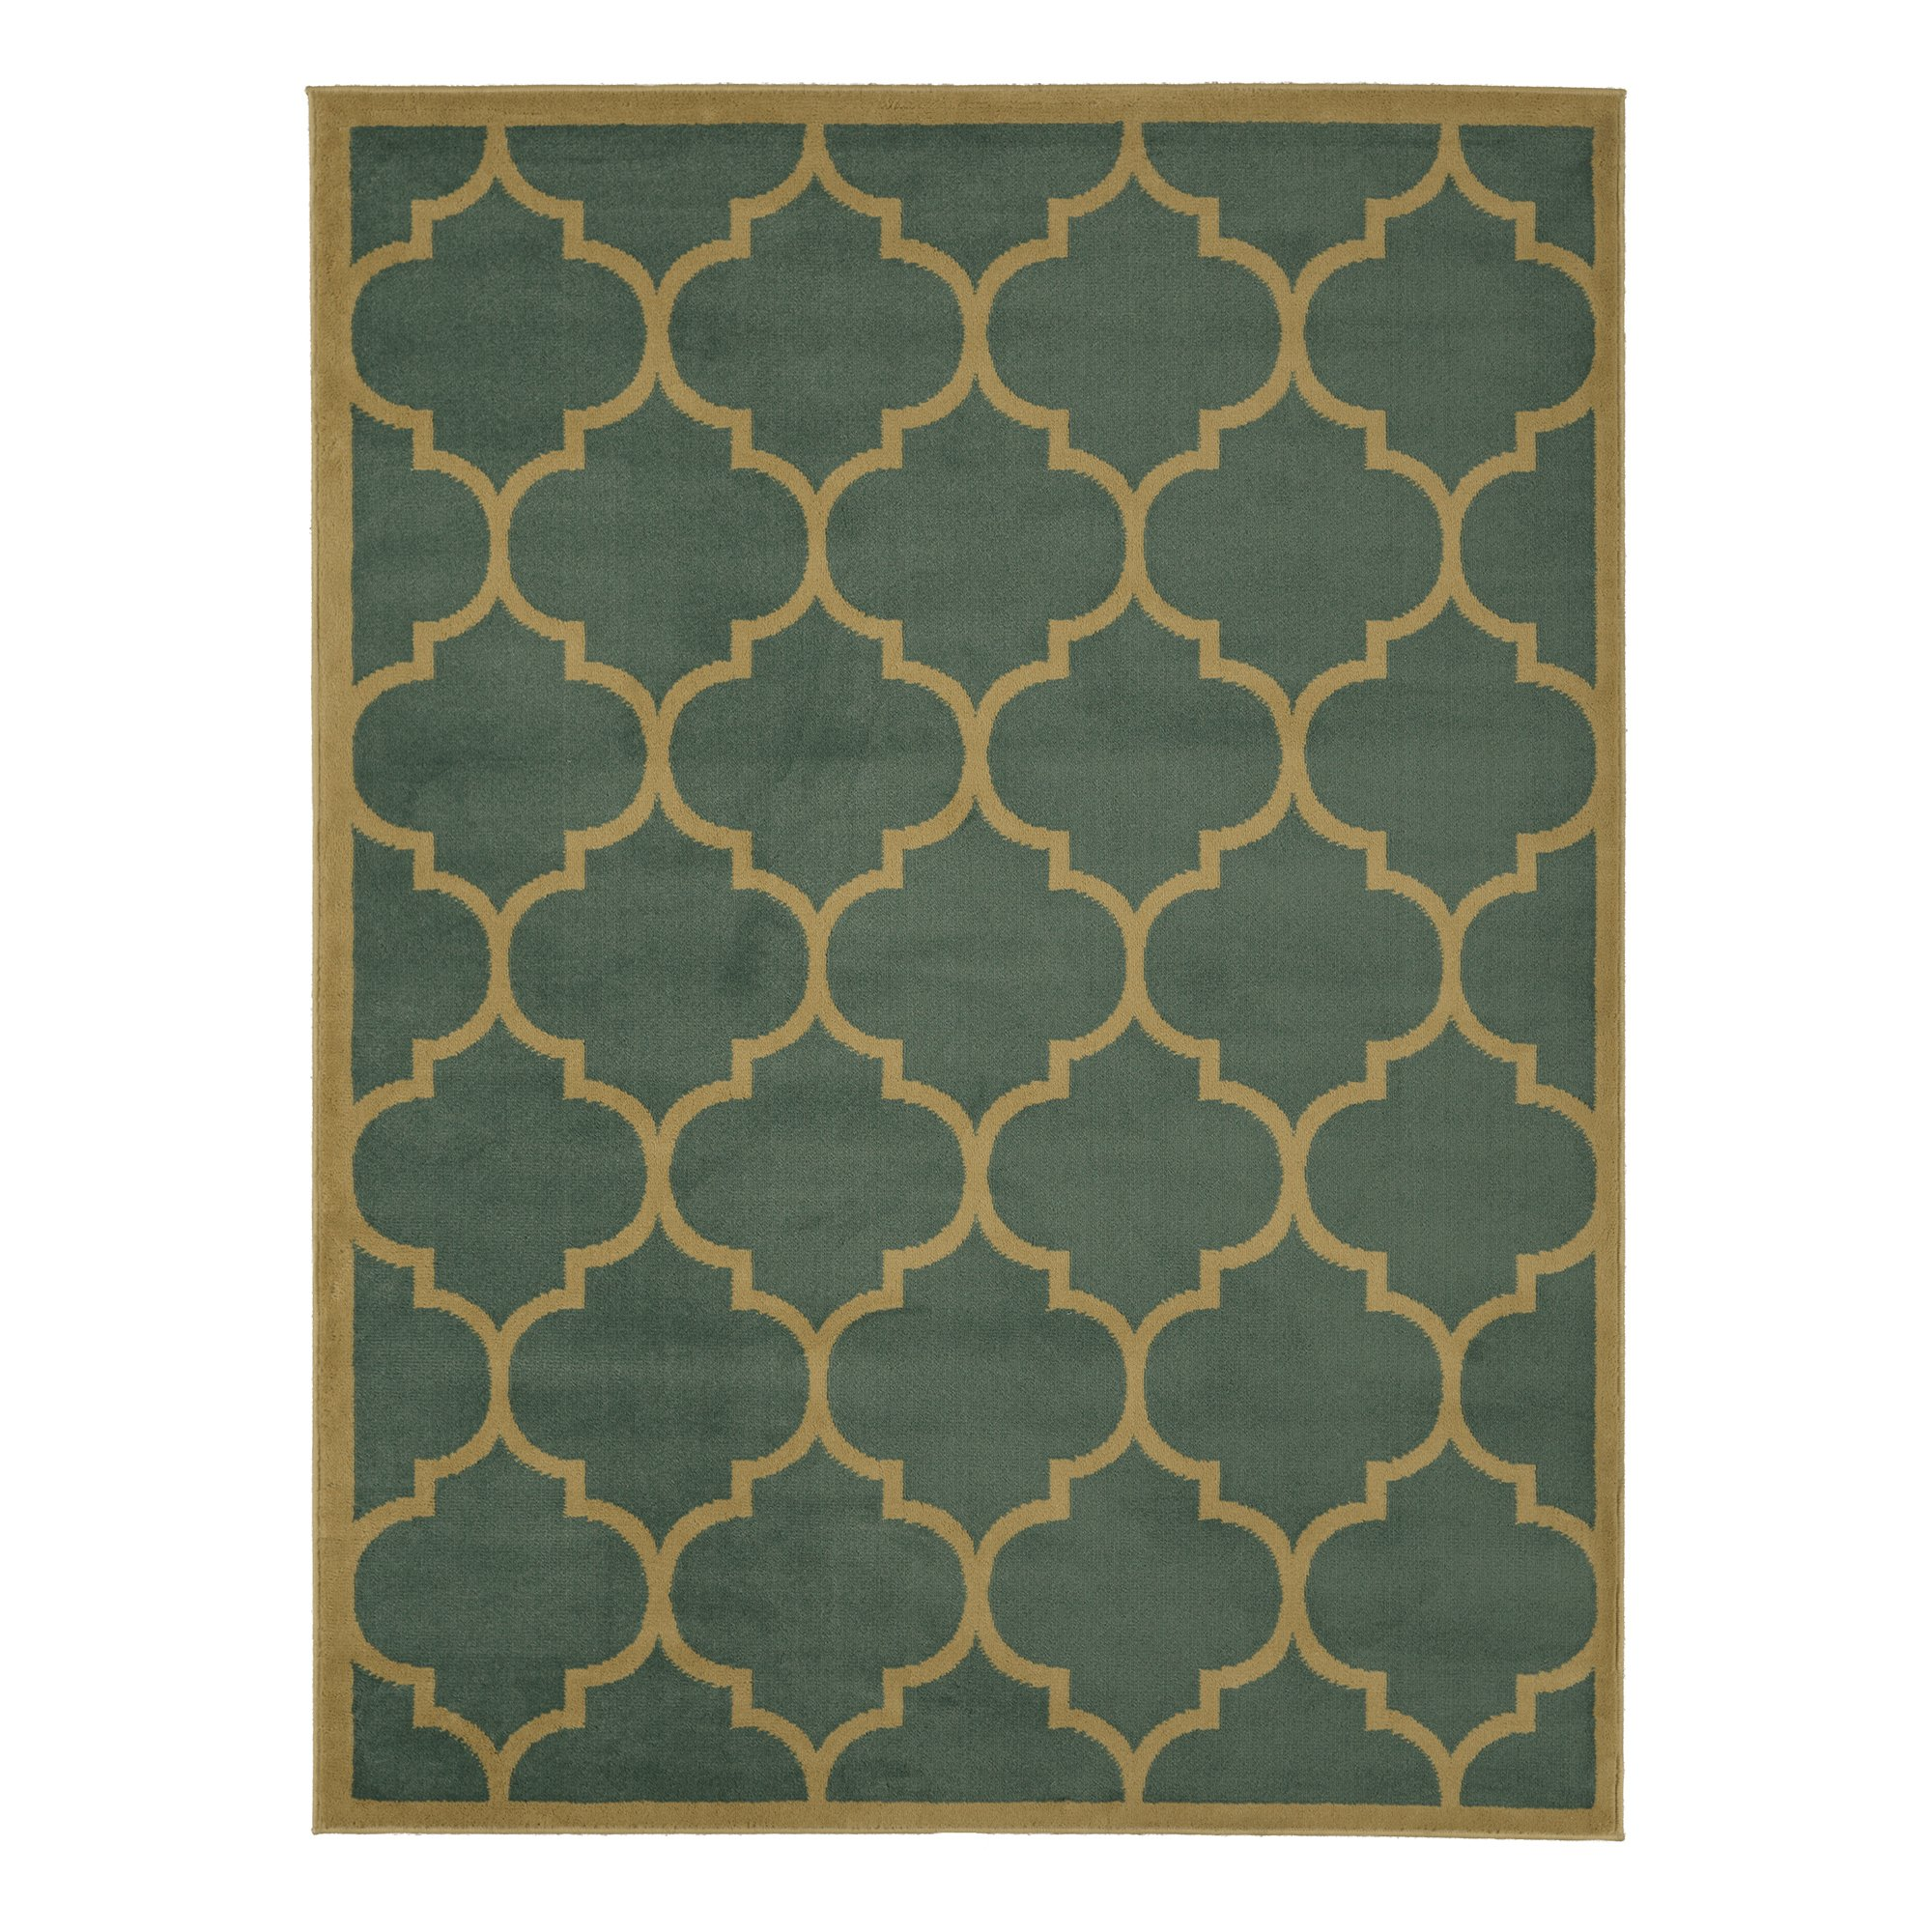 Sweet Home Stores Clifton Collection Moroccan Trellis Design Area Rug, 7'10'' X 9'10'', Seafoam by Sweet Home Stores (Image #4)